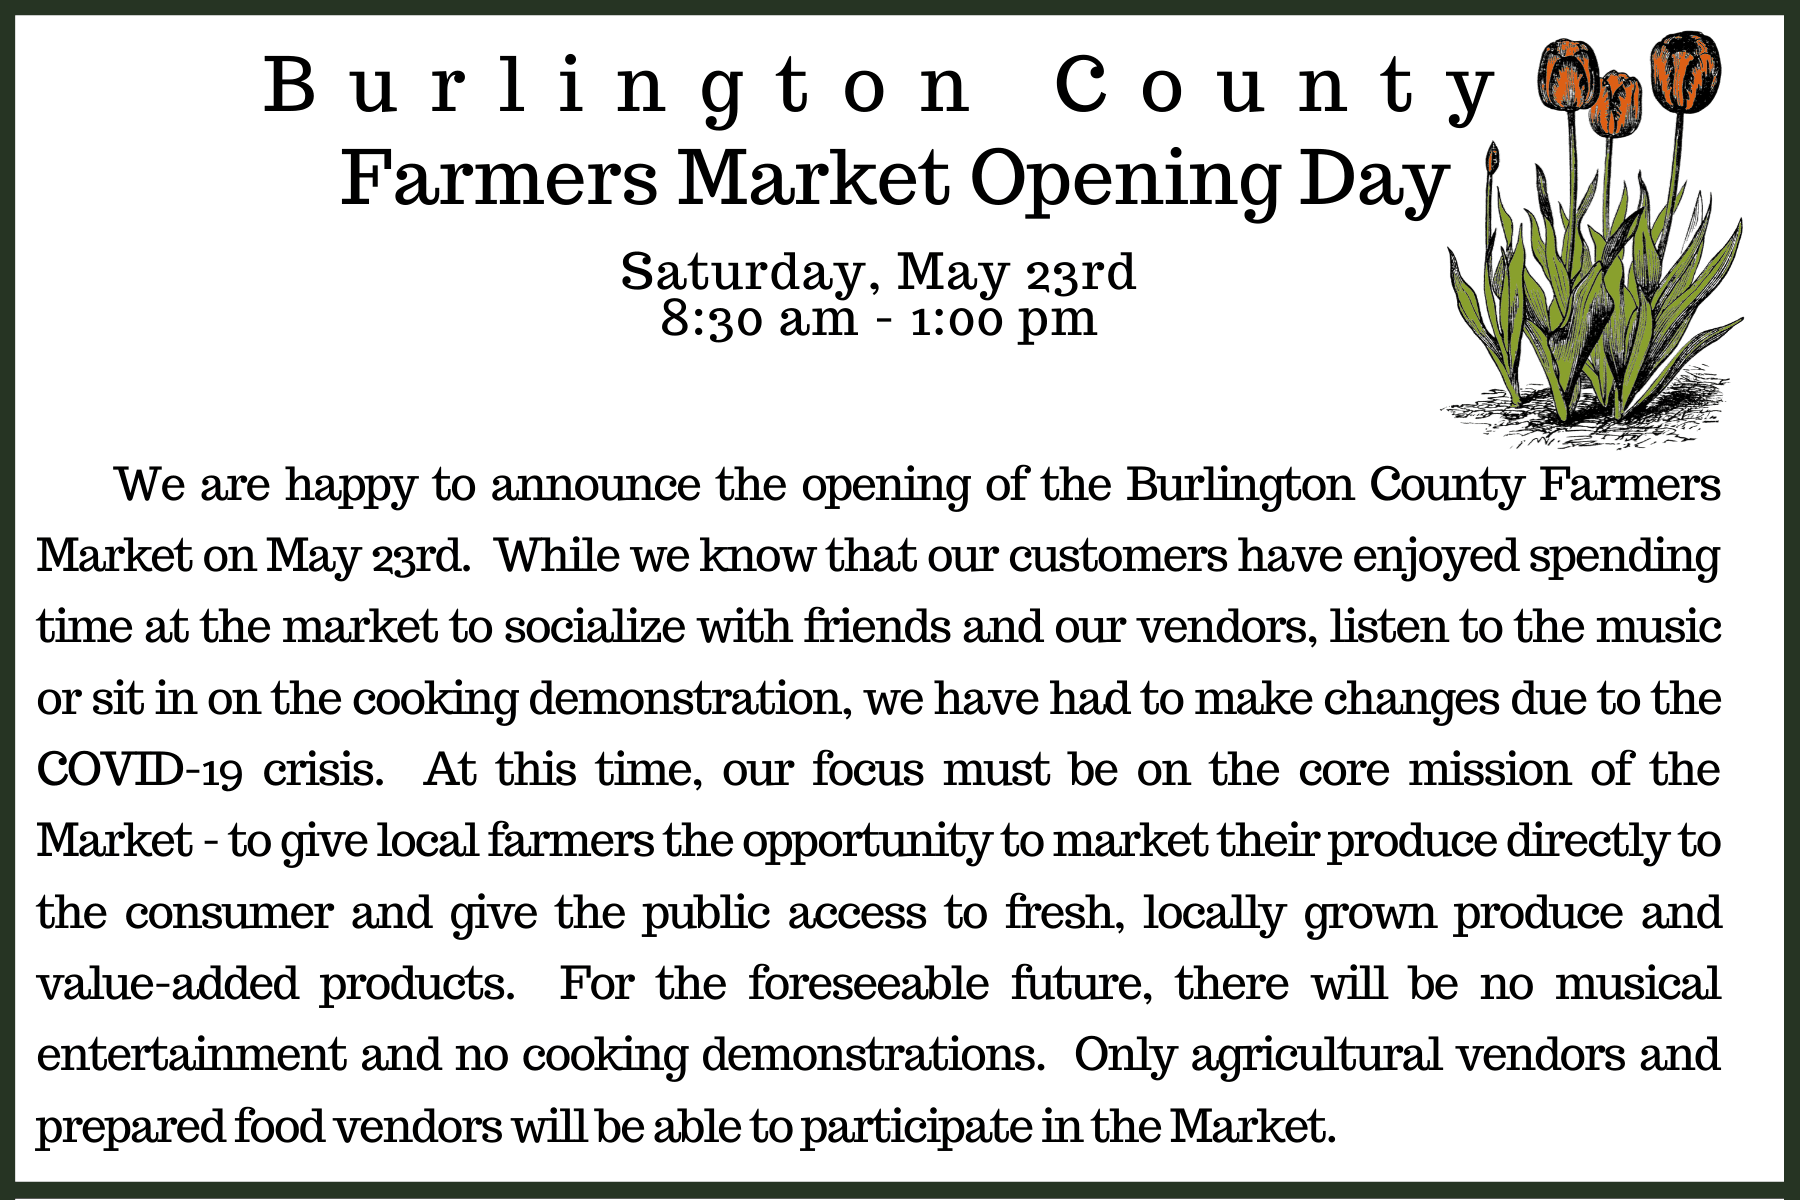 Farmers Market opening day